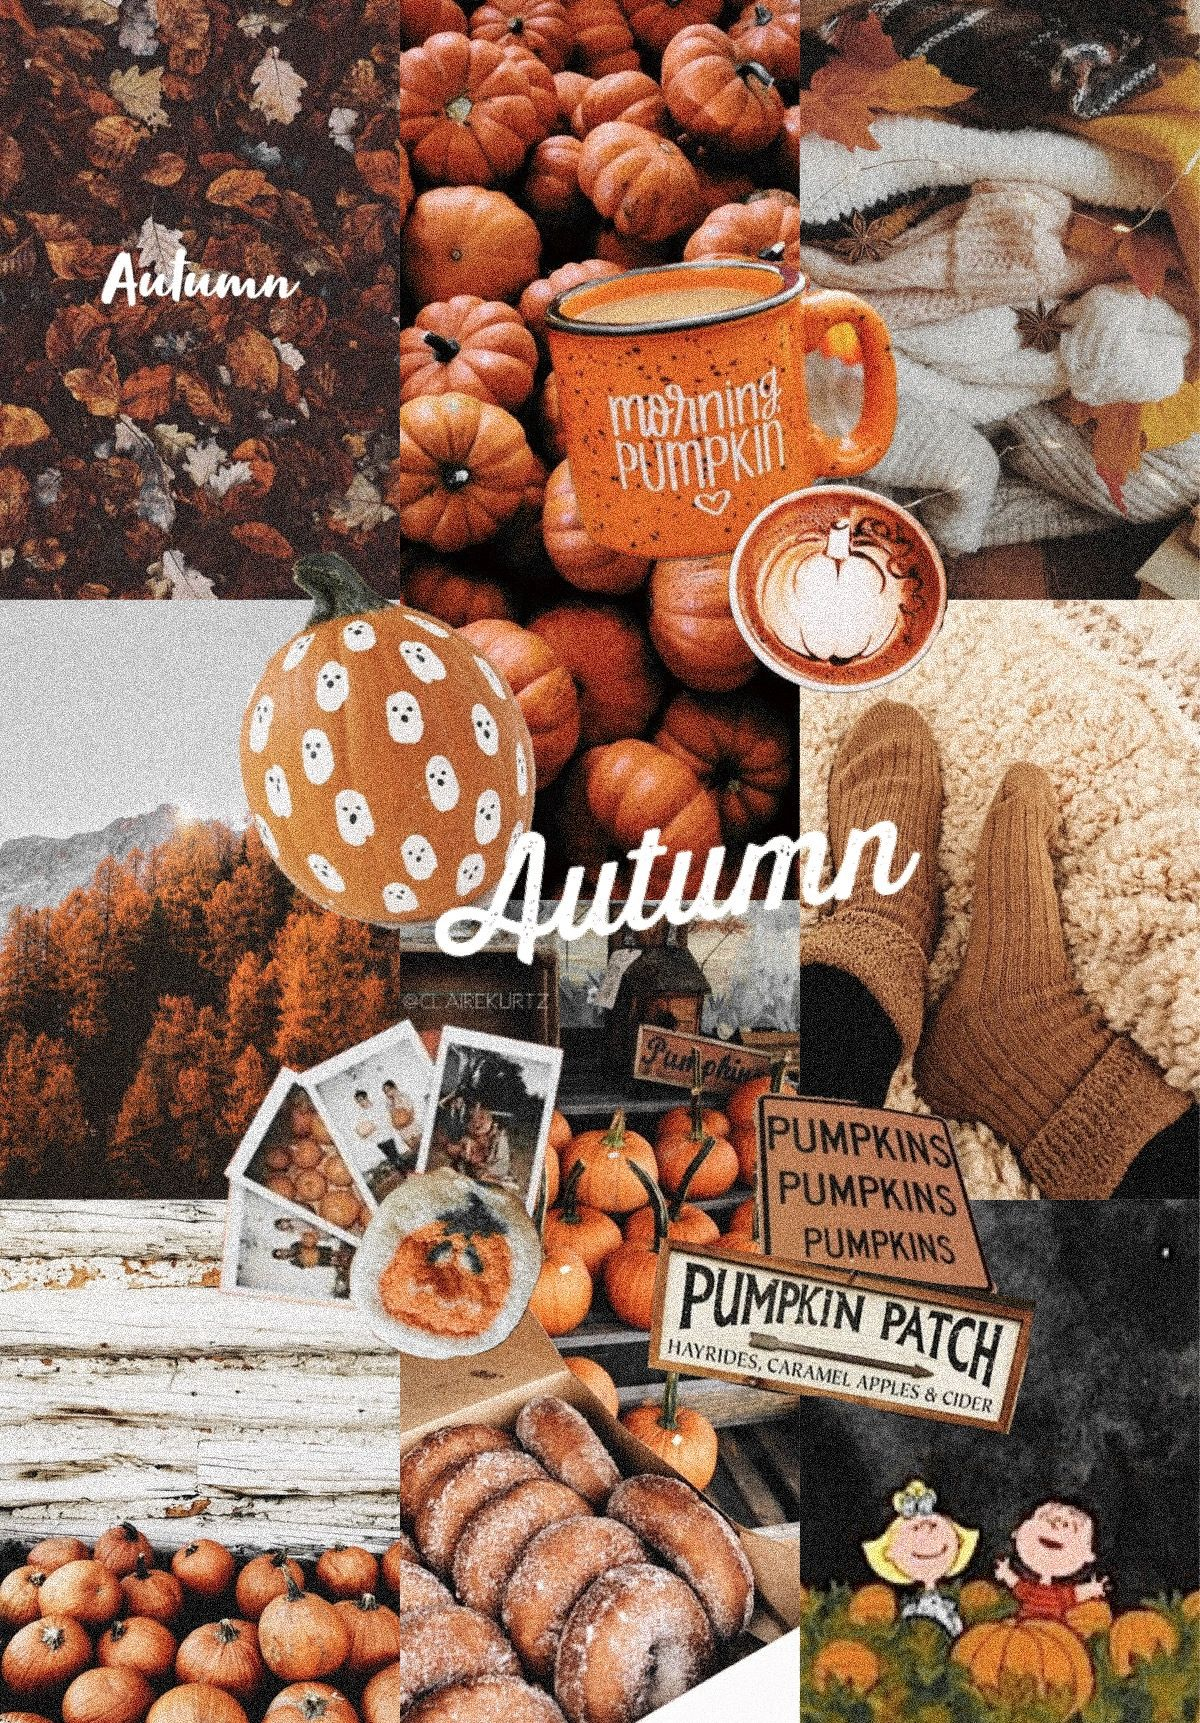 Autumn Fall Aesthetic Vsco Collage Iphone Wallpaper Iphone Wallpaper Fall Halloween Wallpaper Iphone Fall Wallpaper